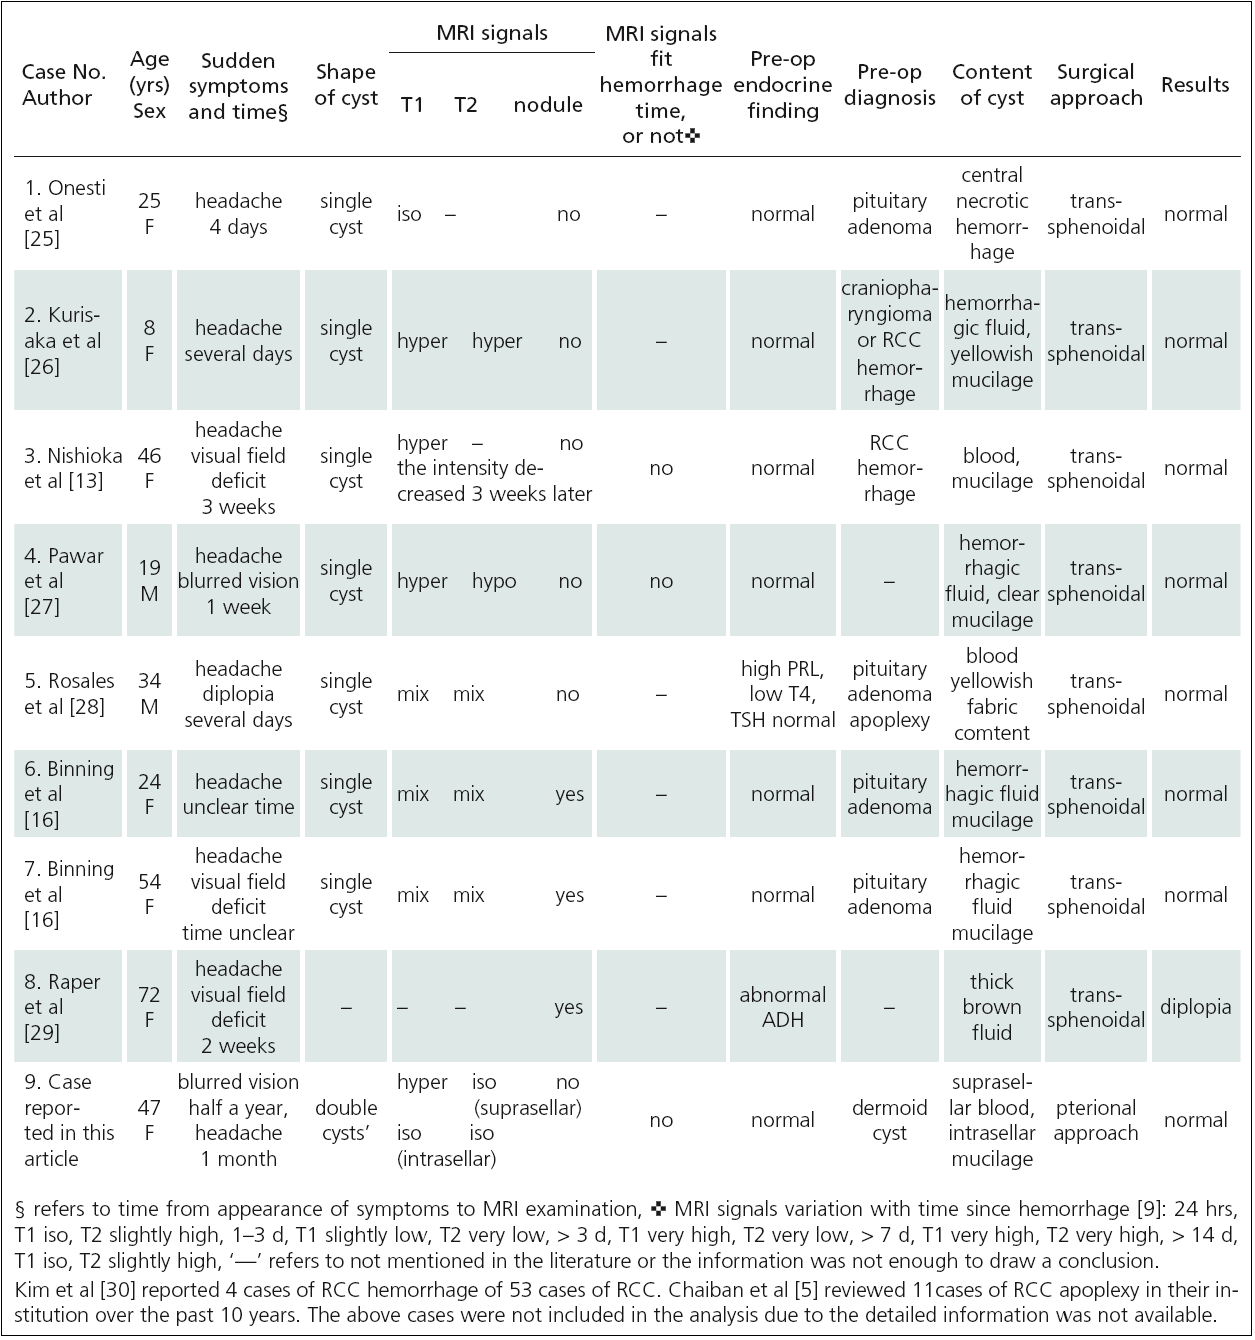 Summary of clinical presentation, imaging characteristics, intraoperative findings, and outcomes in patients with RCC apoplexy in this article and case reports in the literature.